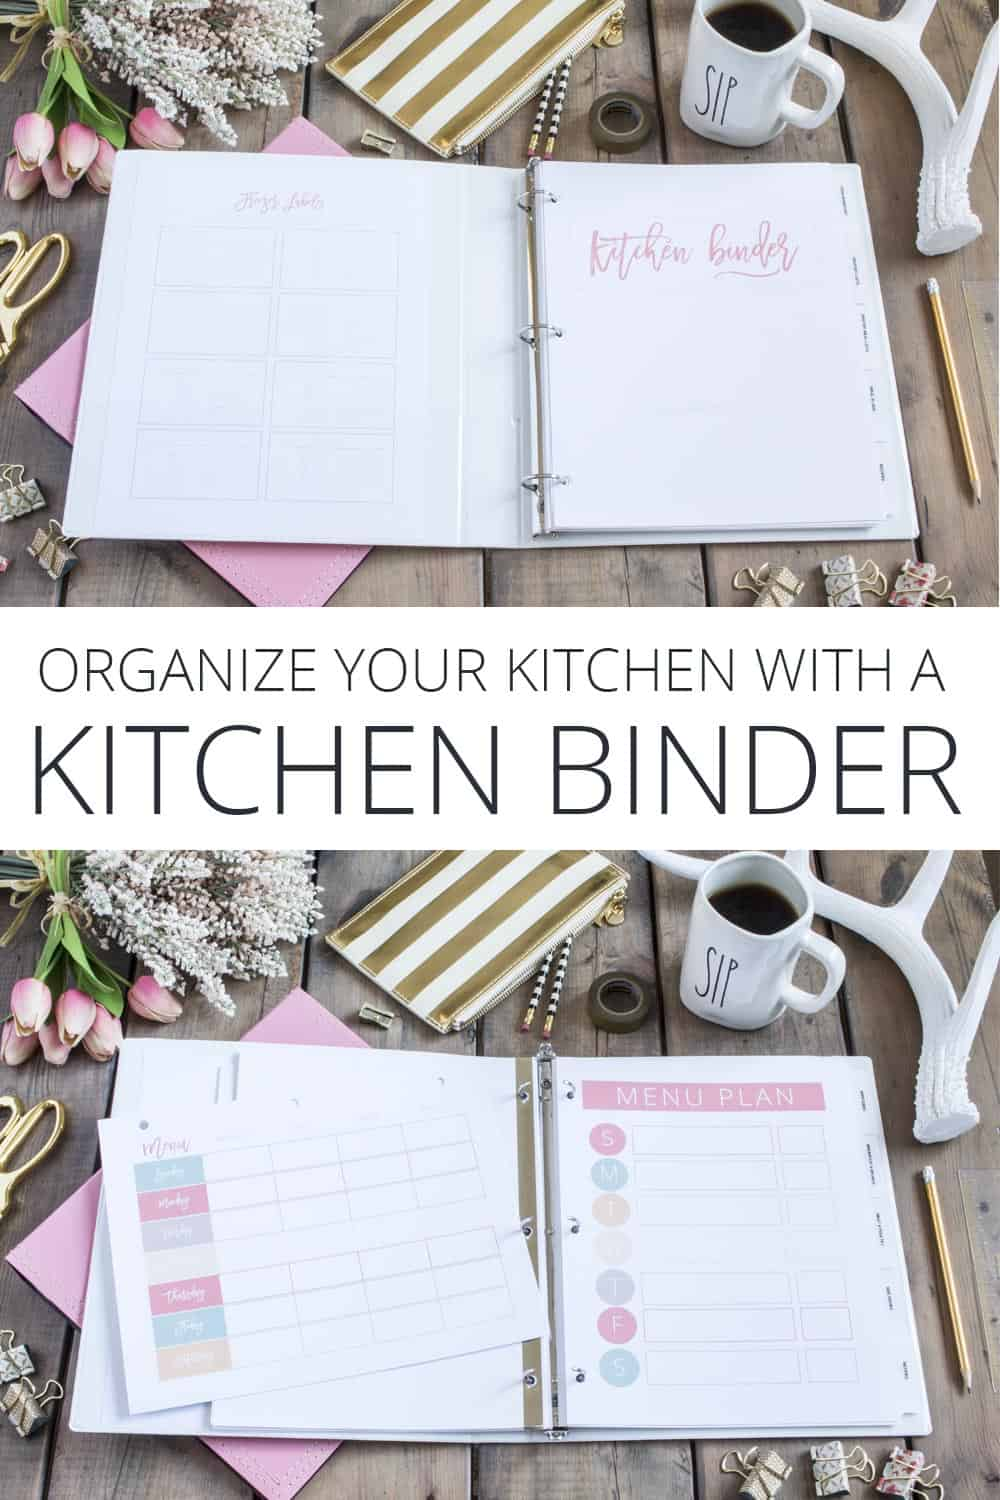 Organize your kitchen and meal planning with a kitchen binder.